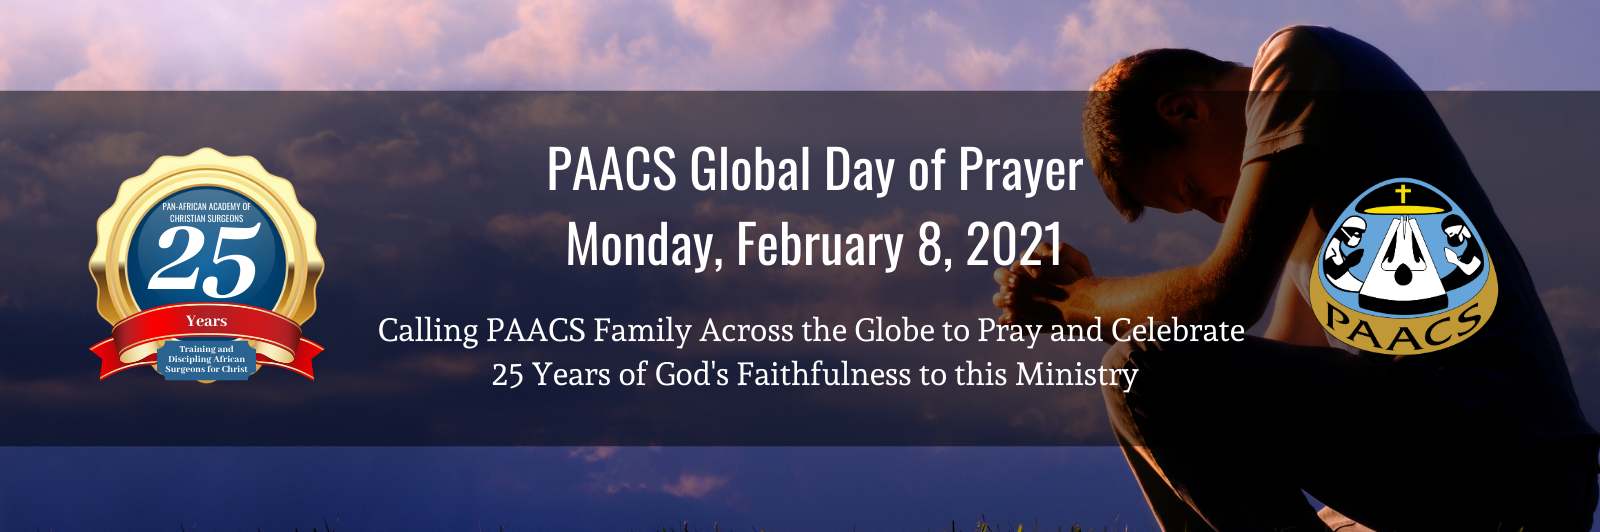 PAACS Global Day of Prayer